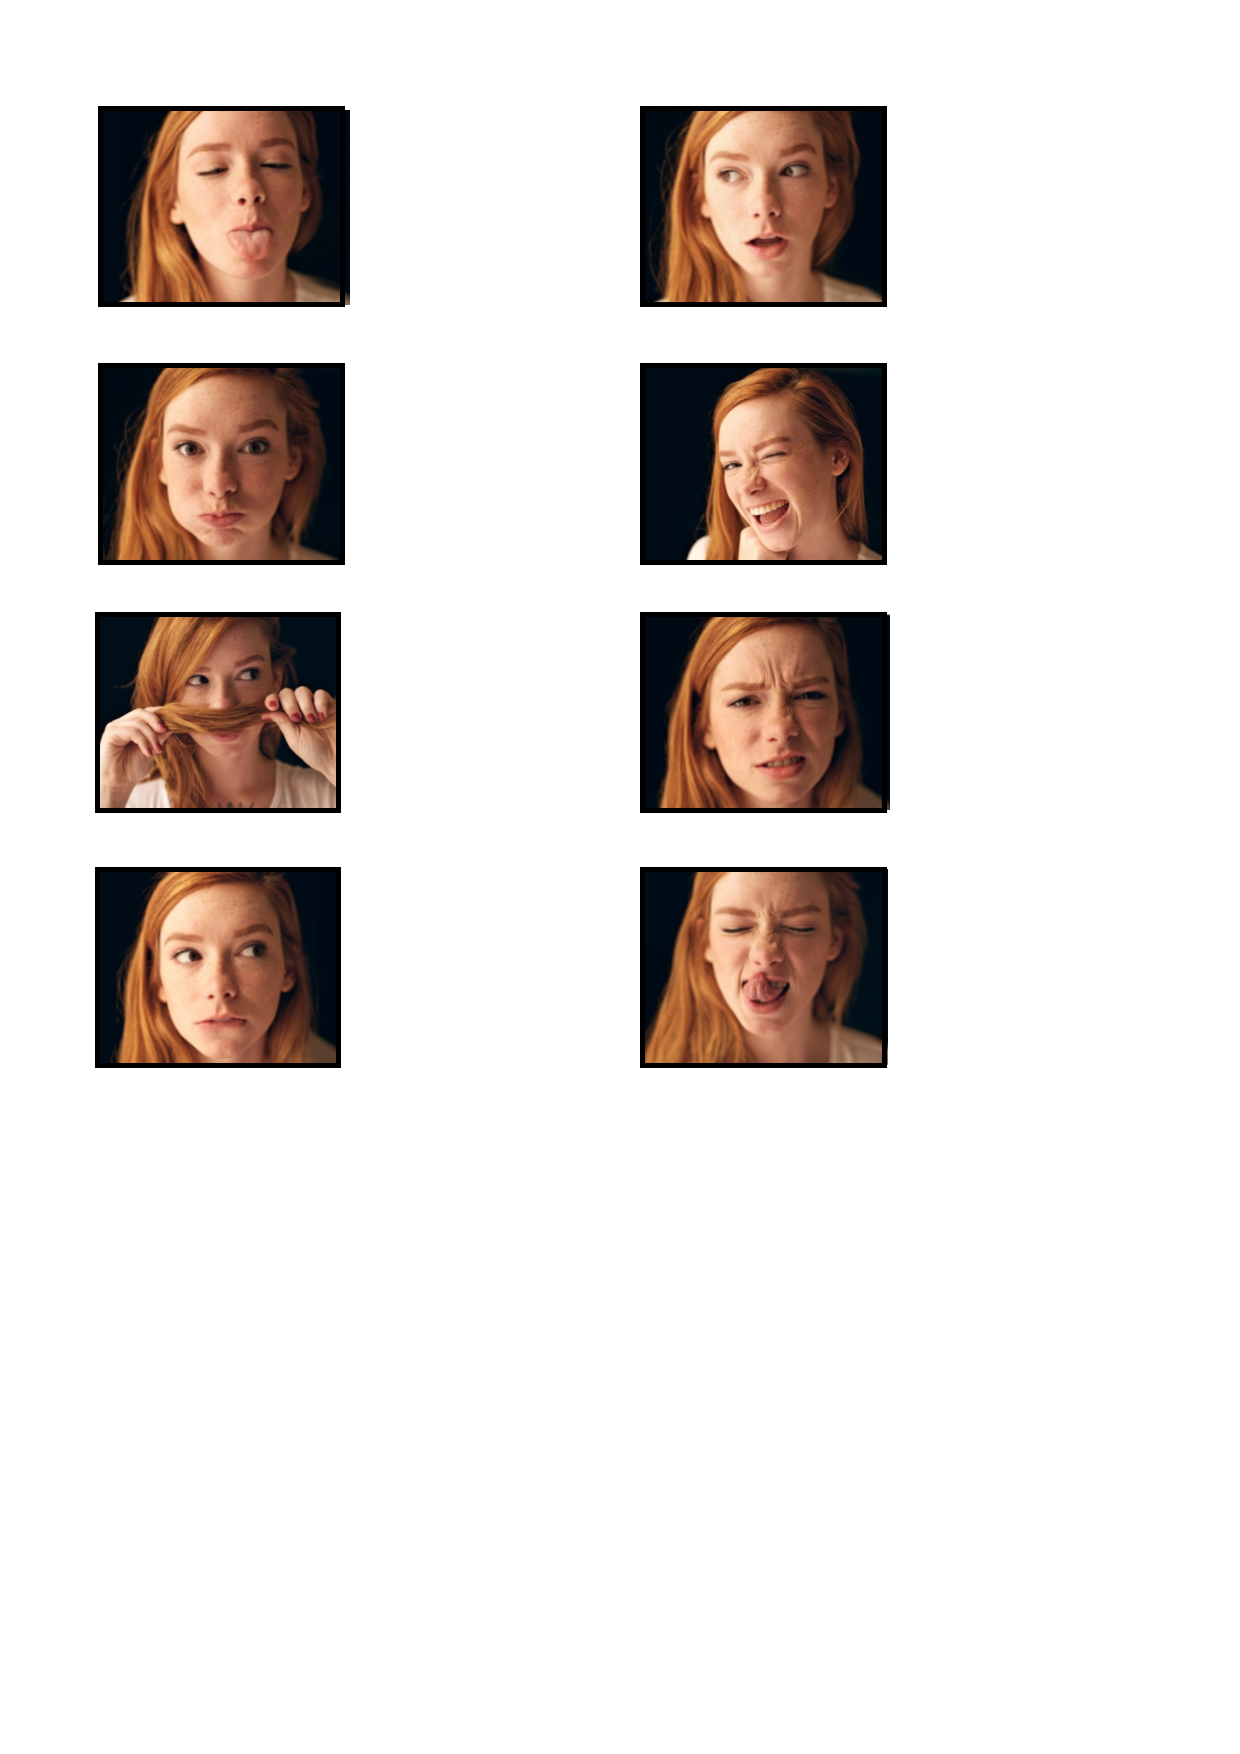 Tiles For The Facial Expression Matching Game Find The